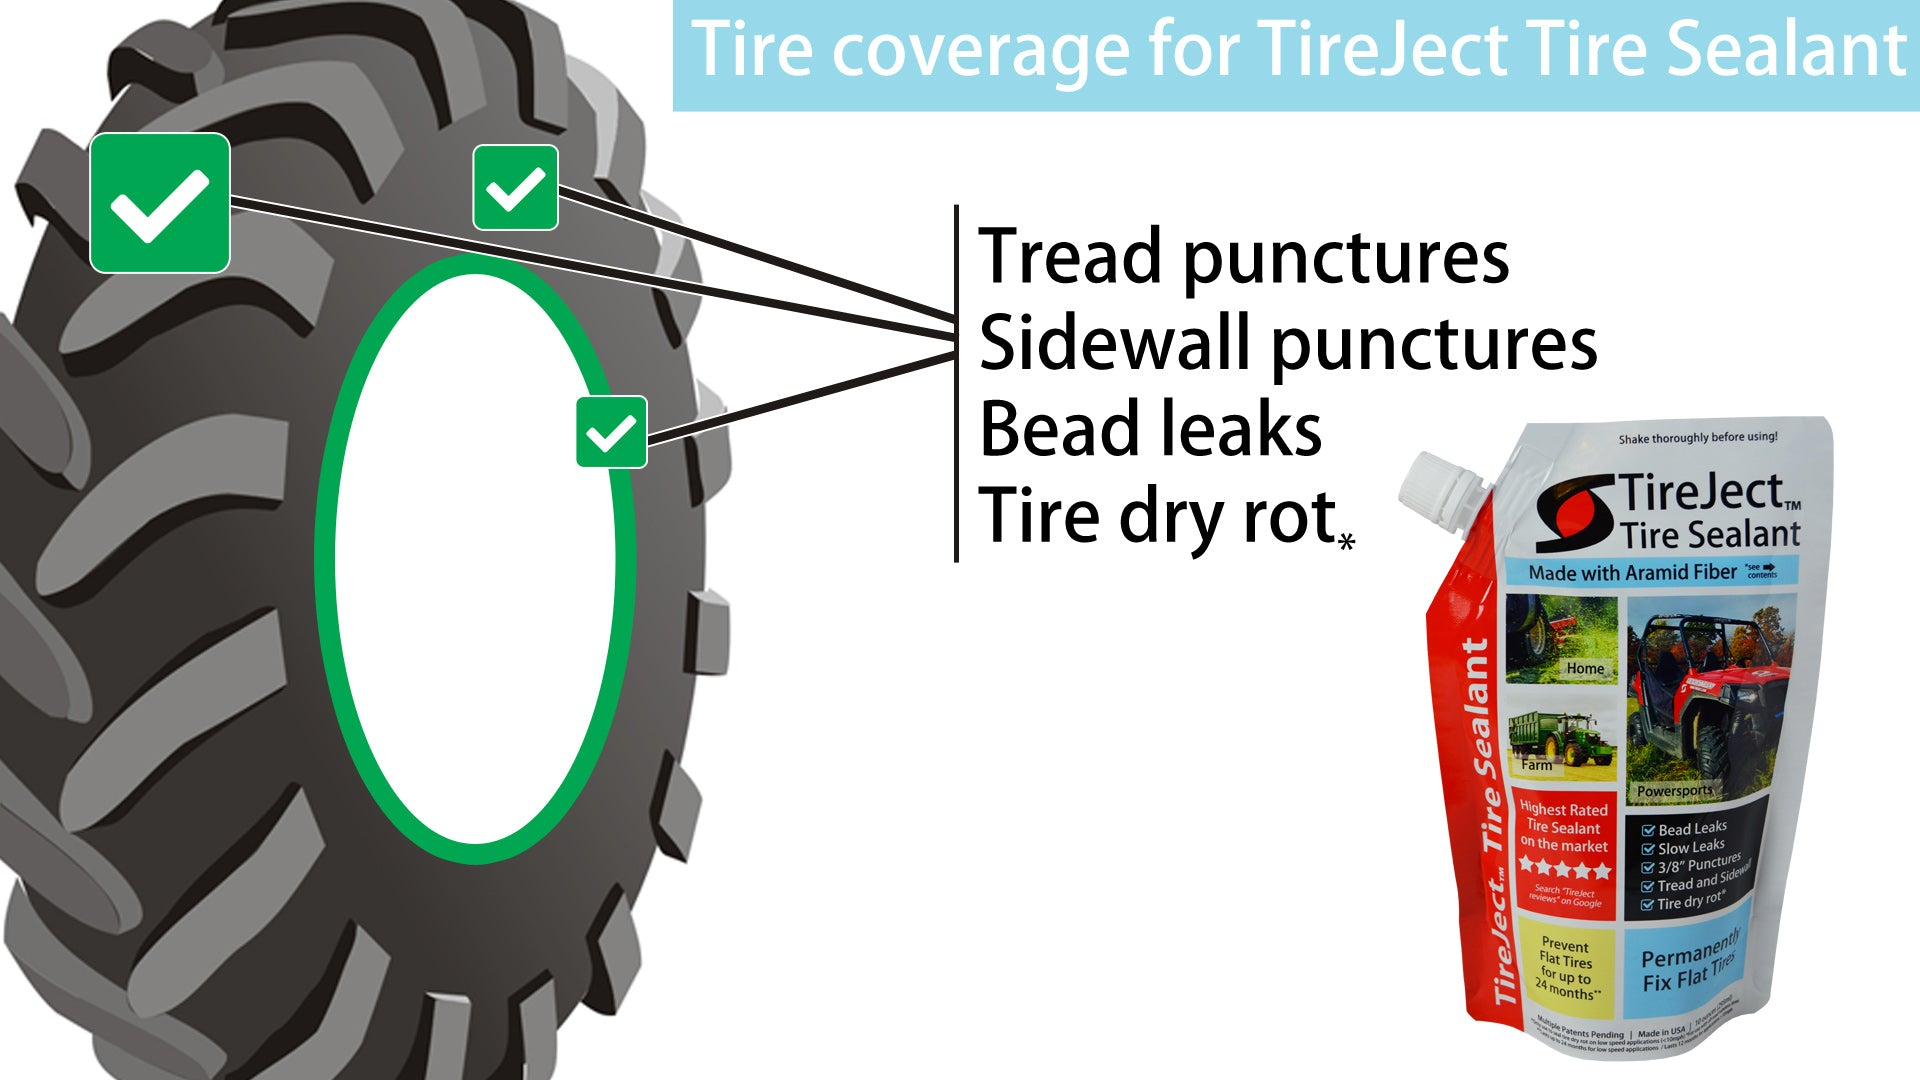 Tireject Easily Repair Flat Tires Highest Rated Tire Sealant